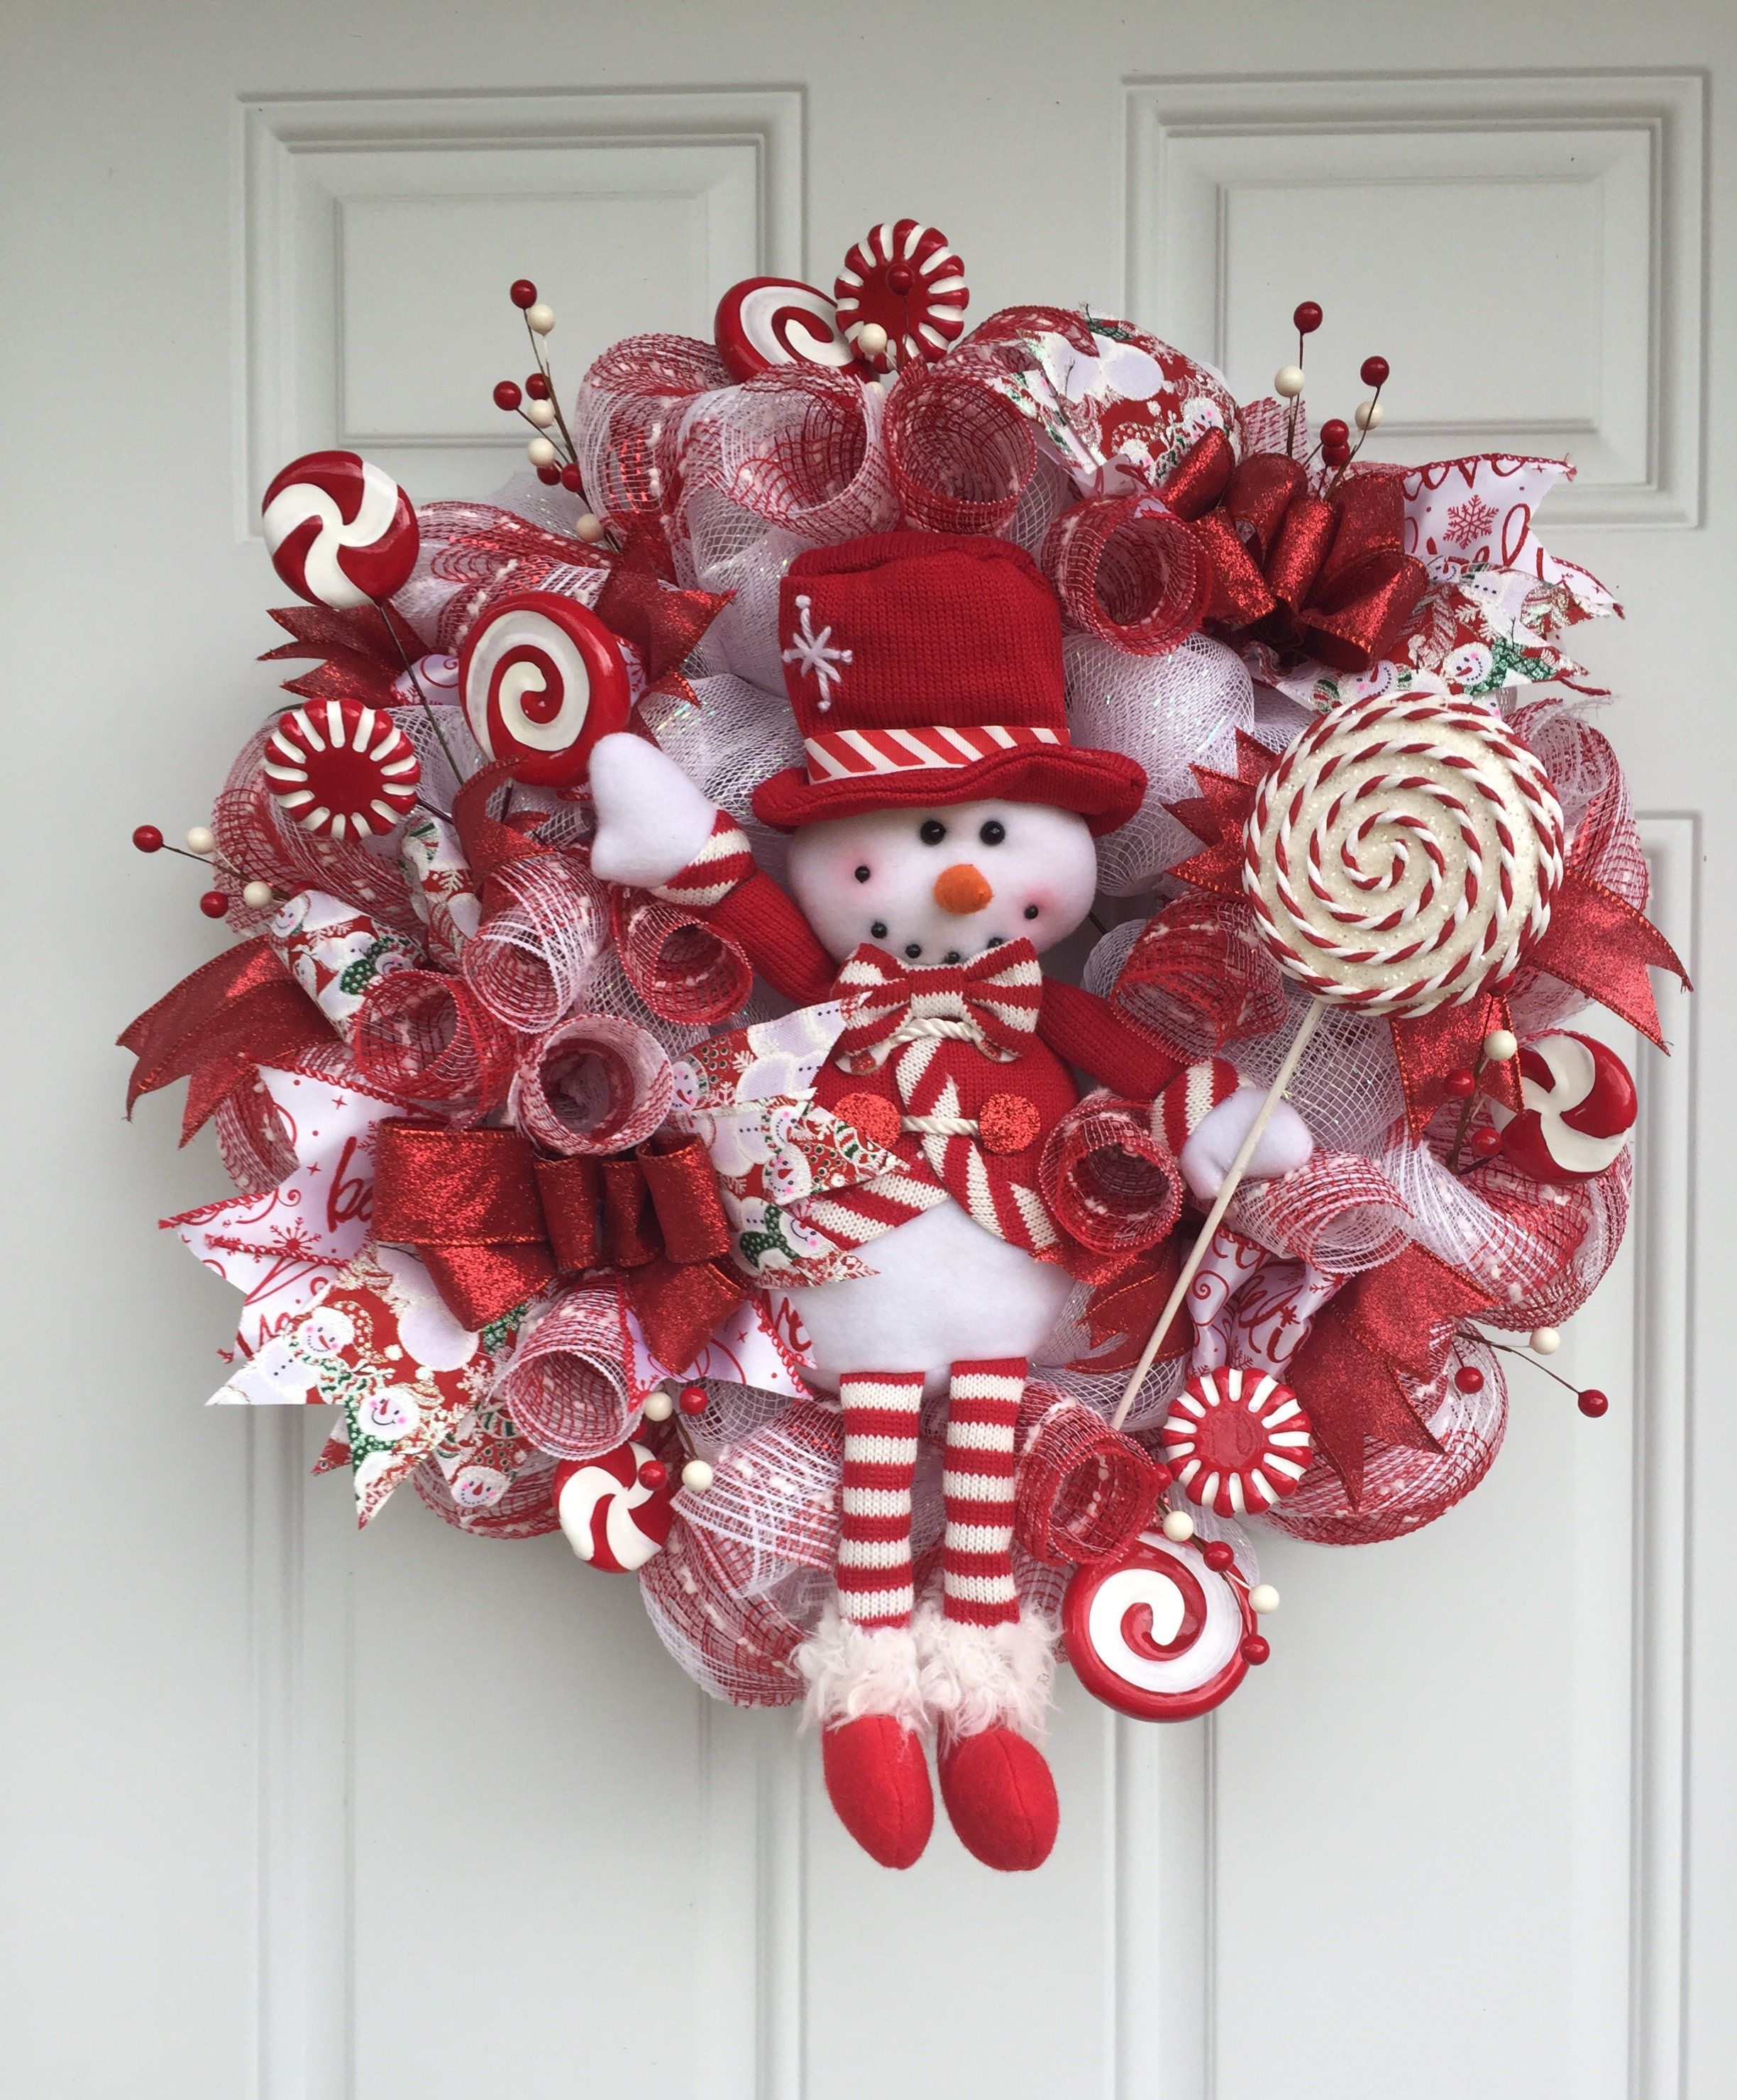 Snowman Wreath Christmas Home Decor by